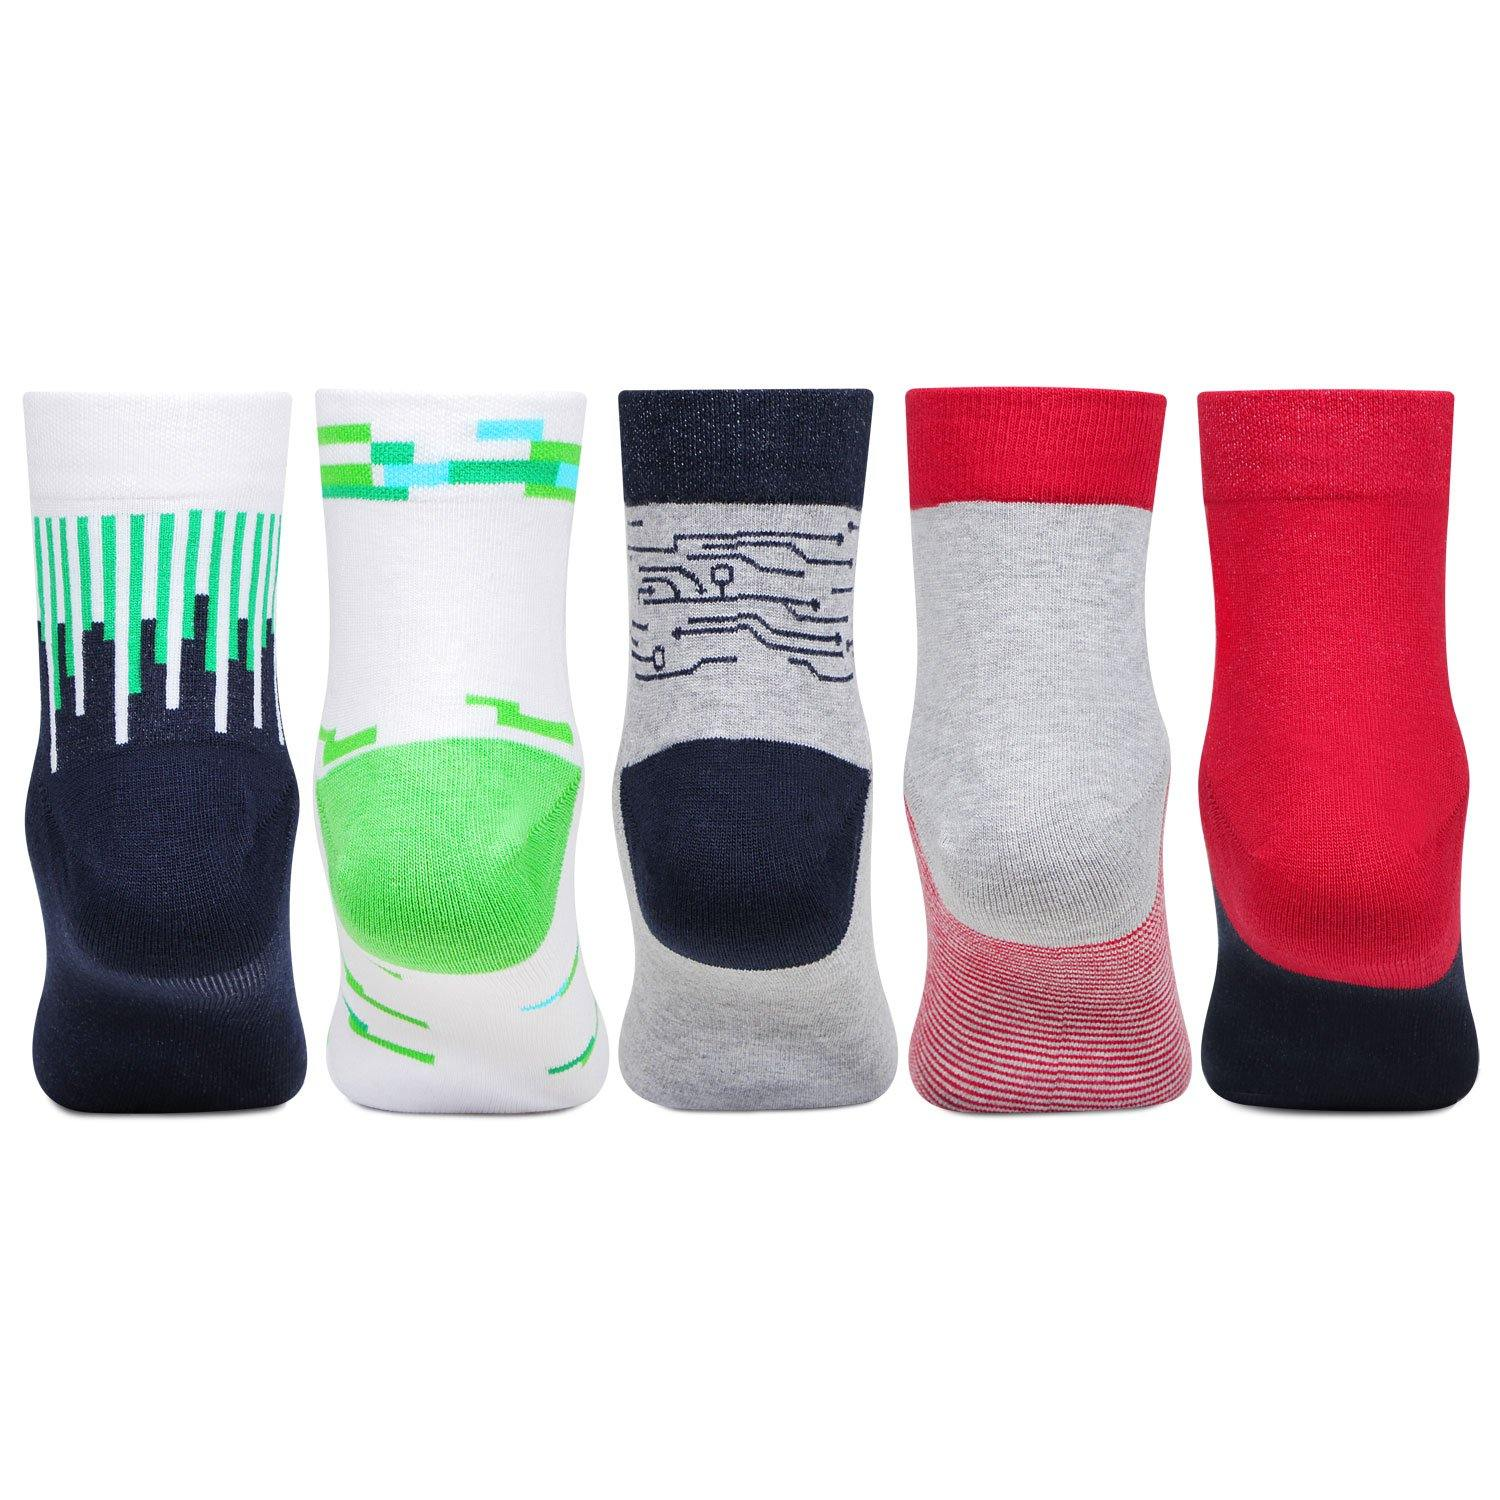 Ben 10 Ankle-Length Socks  Cotton For Boys- Pack Of 5